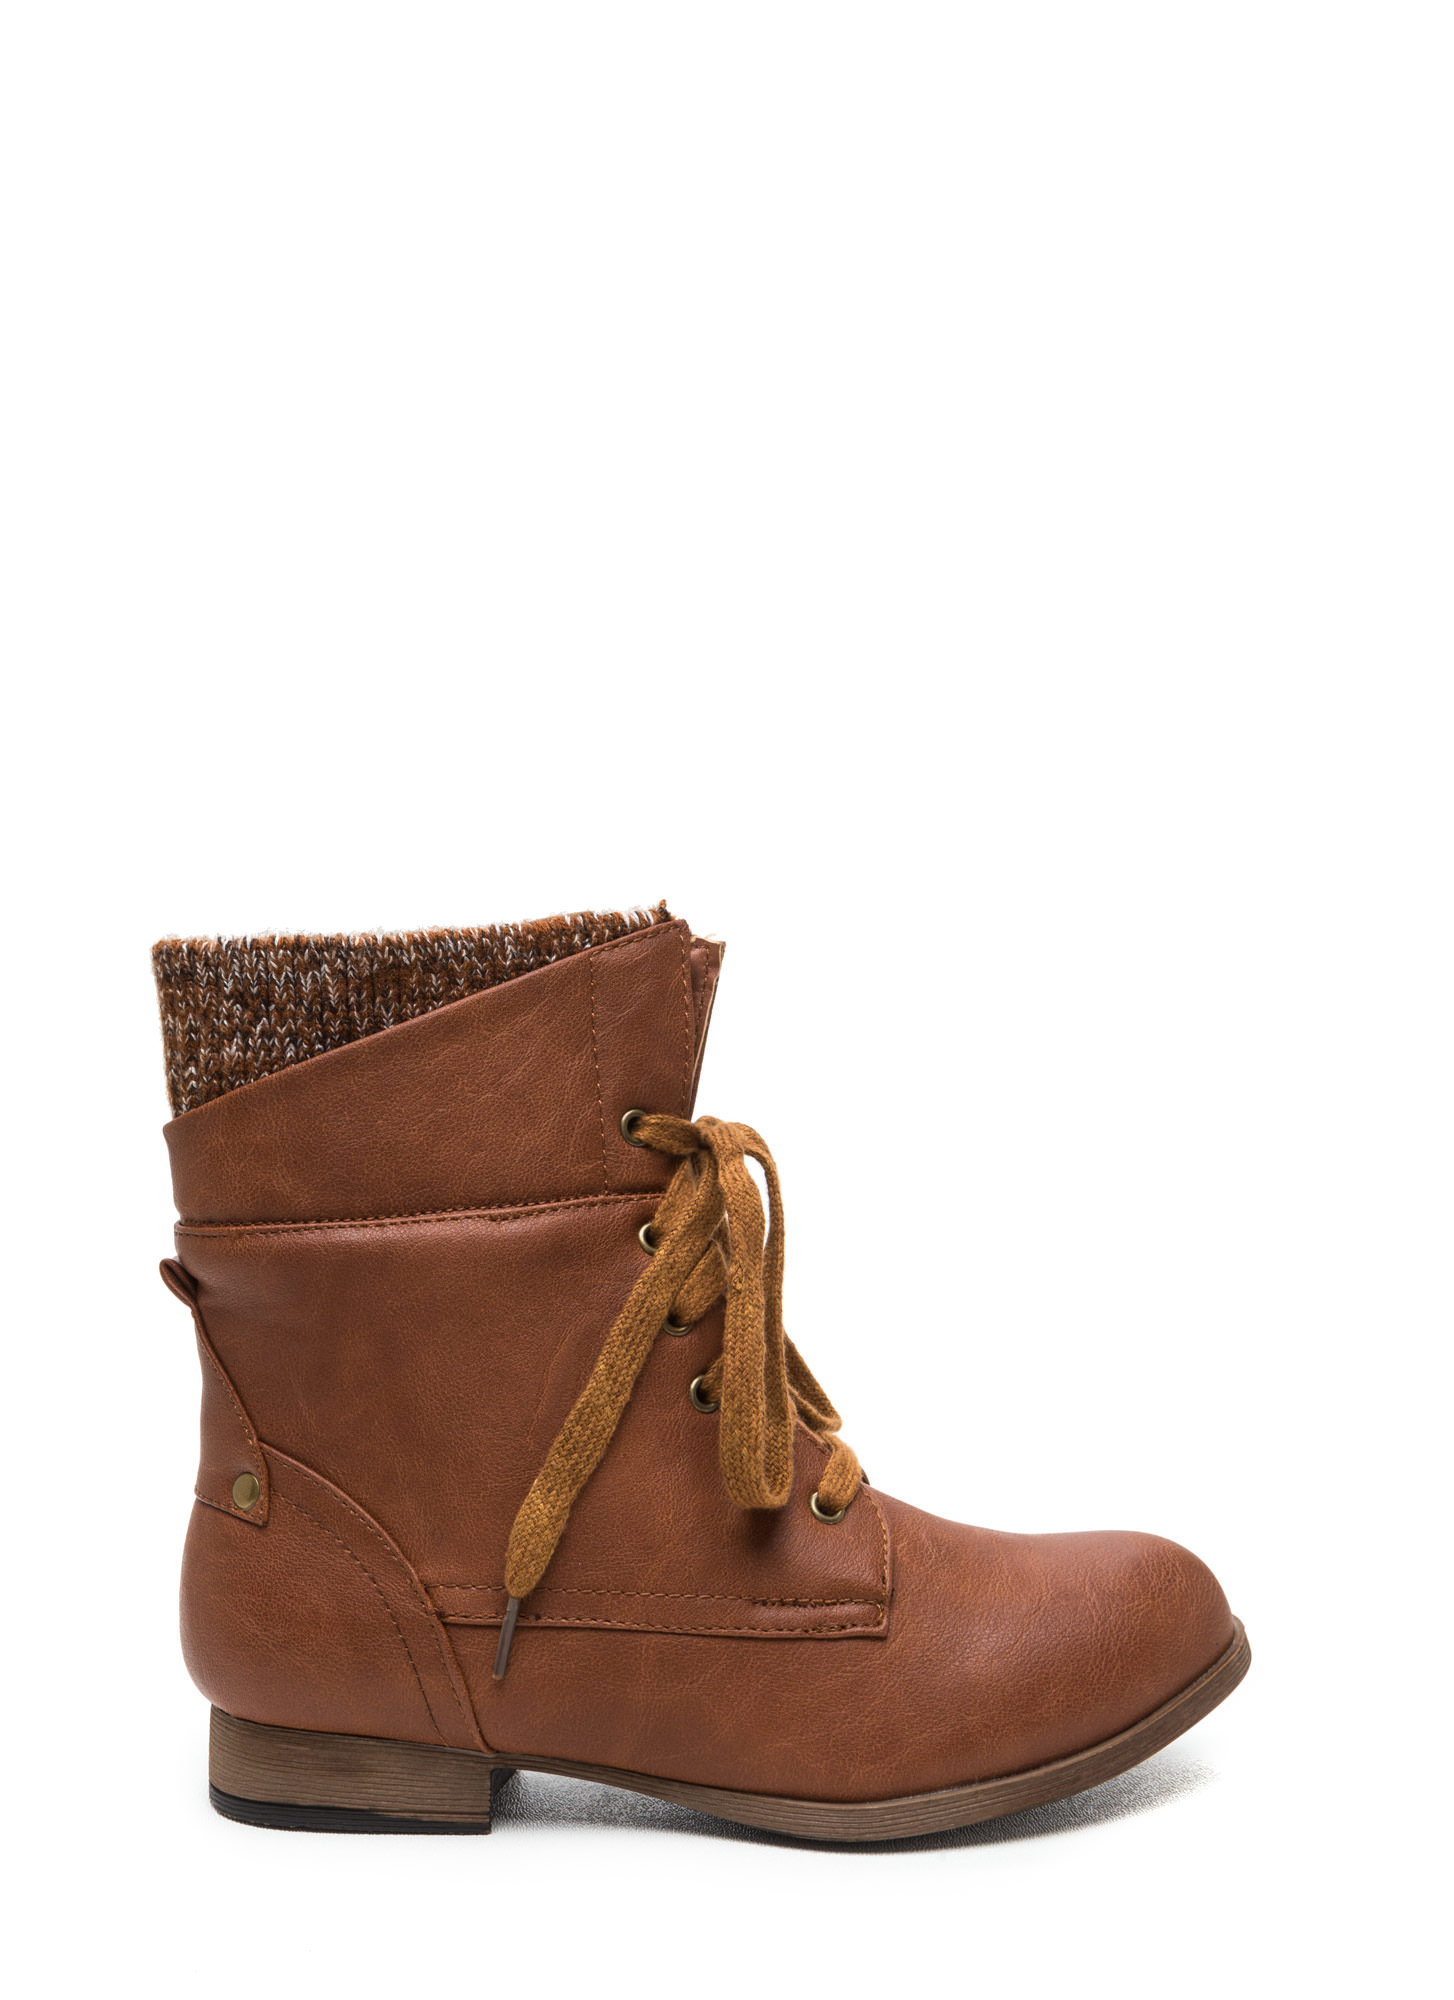 Sweater Weather Cuffed Lace-Up Boots WHISKY